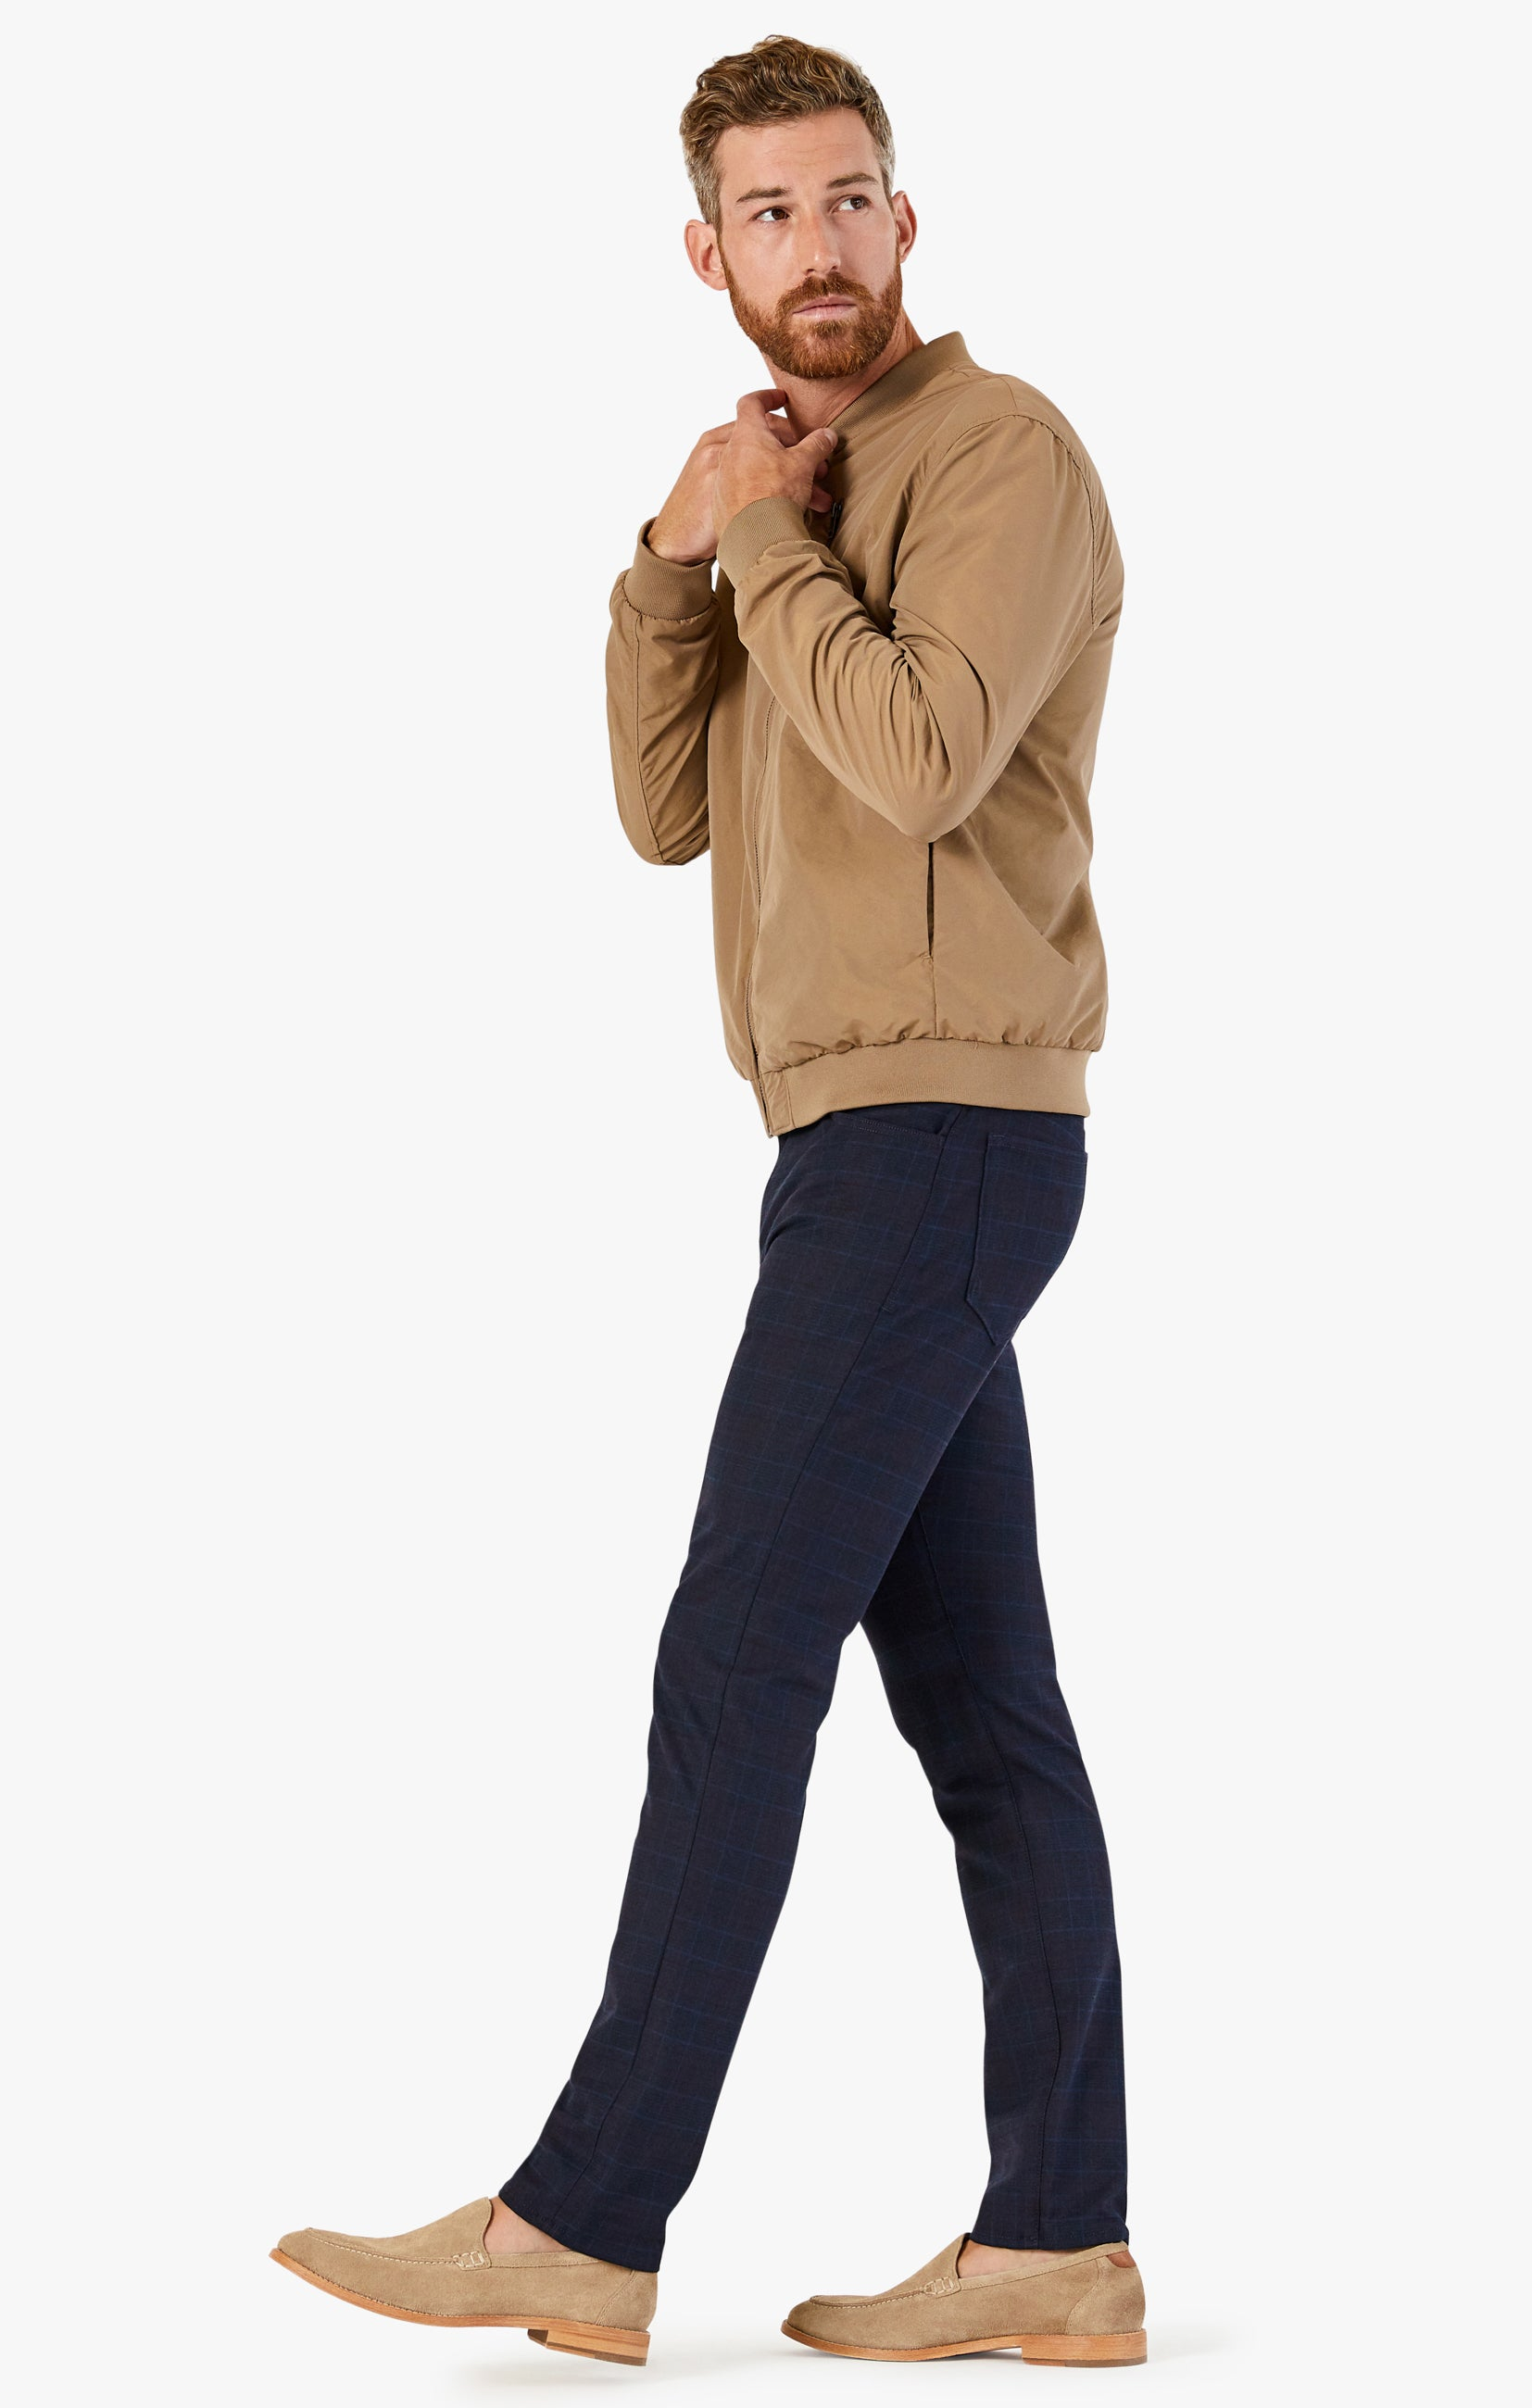 Cool Tapered Leg Pants In Navy Fancy Checked Image 1